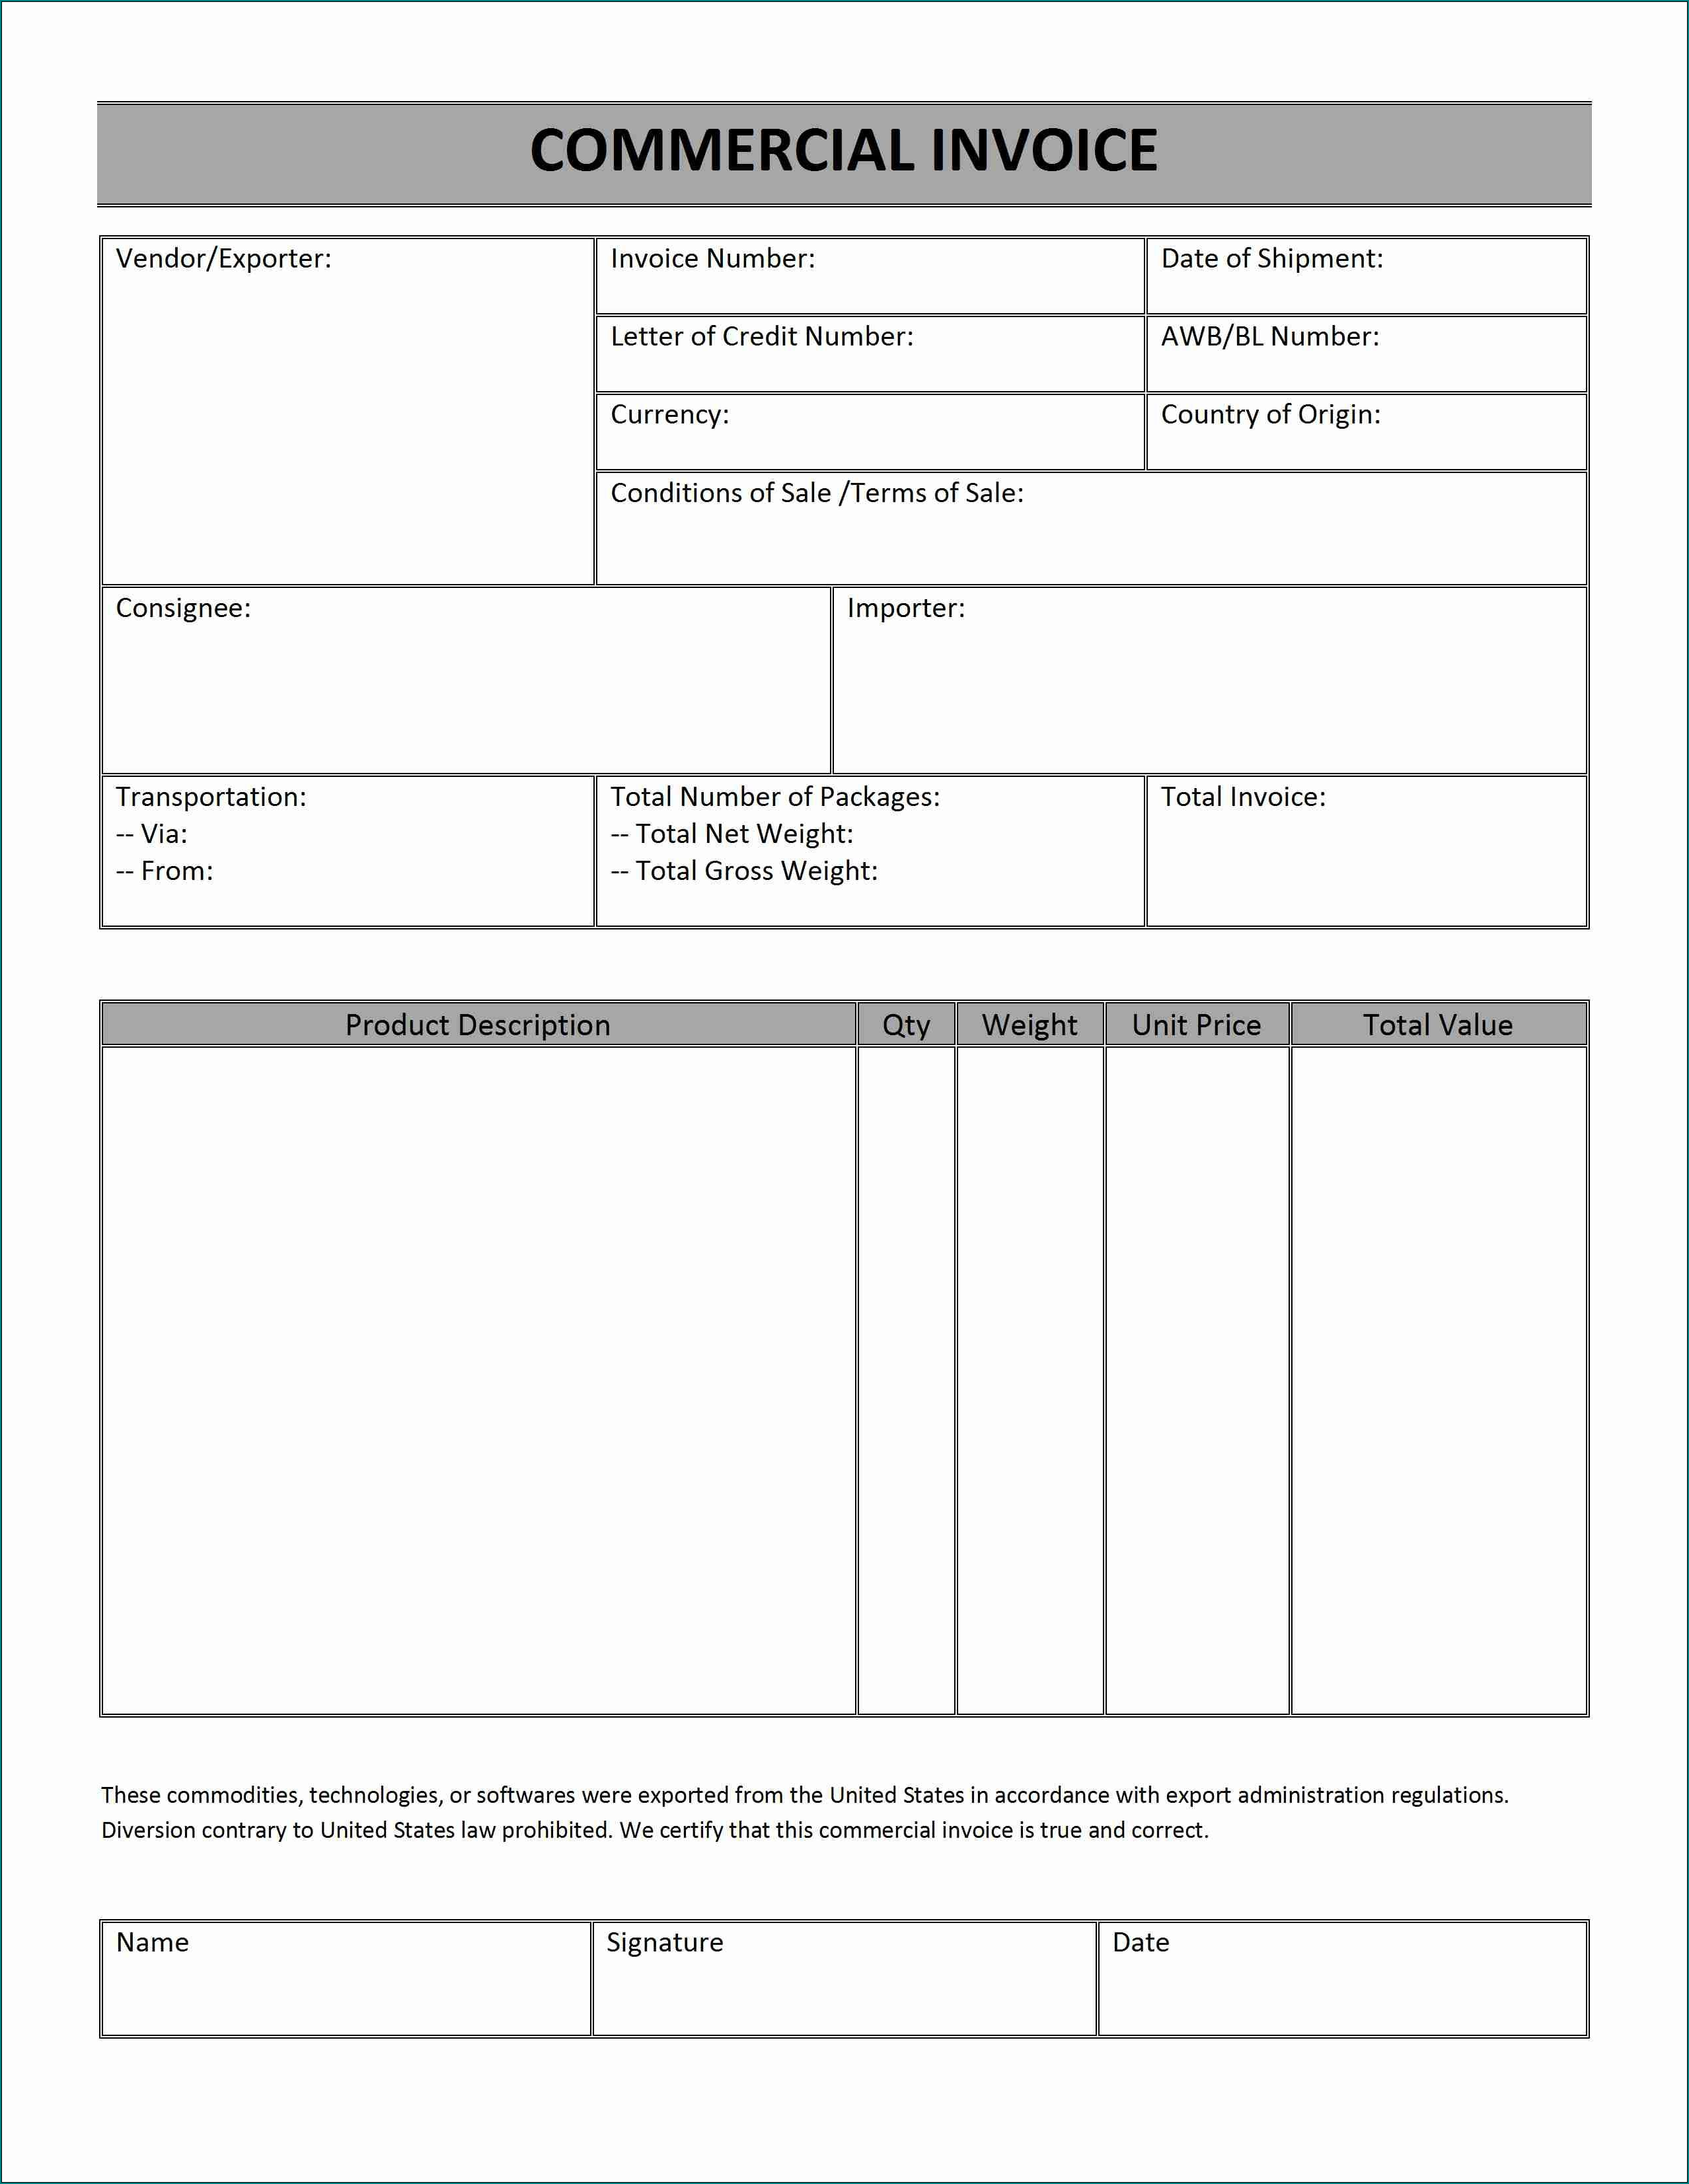 Example of Commercial Invoice Template